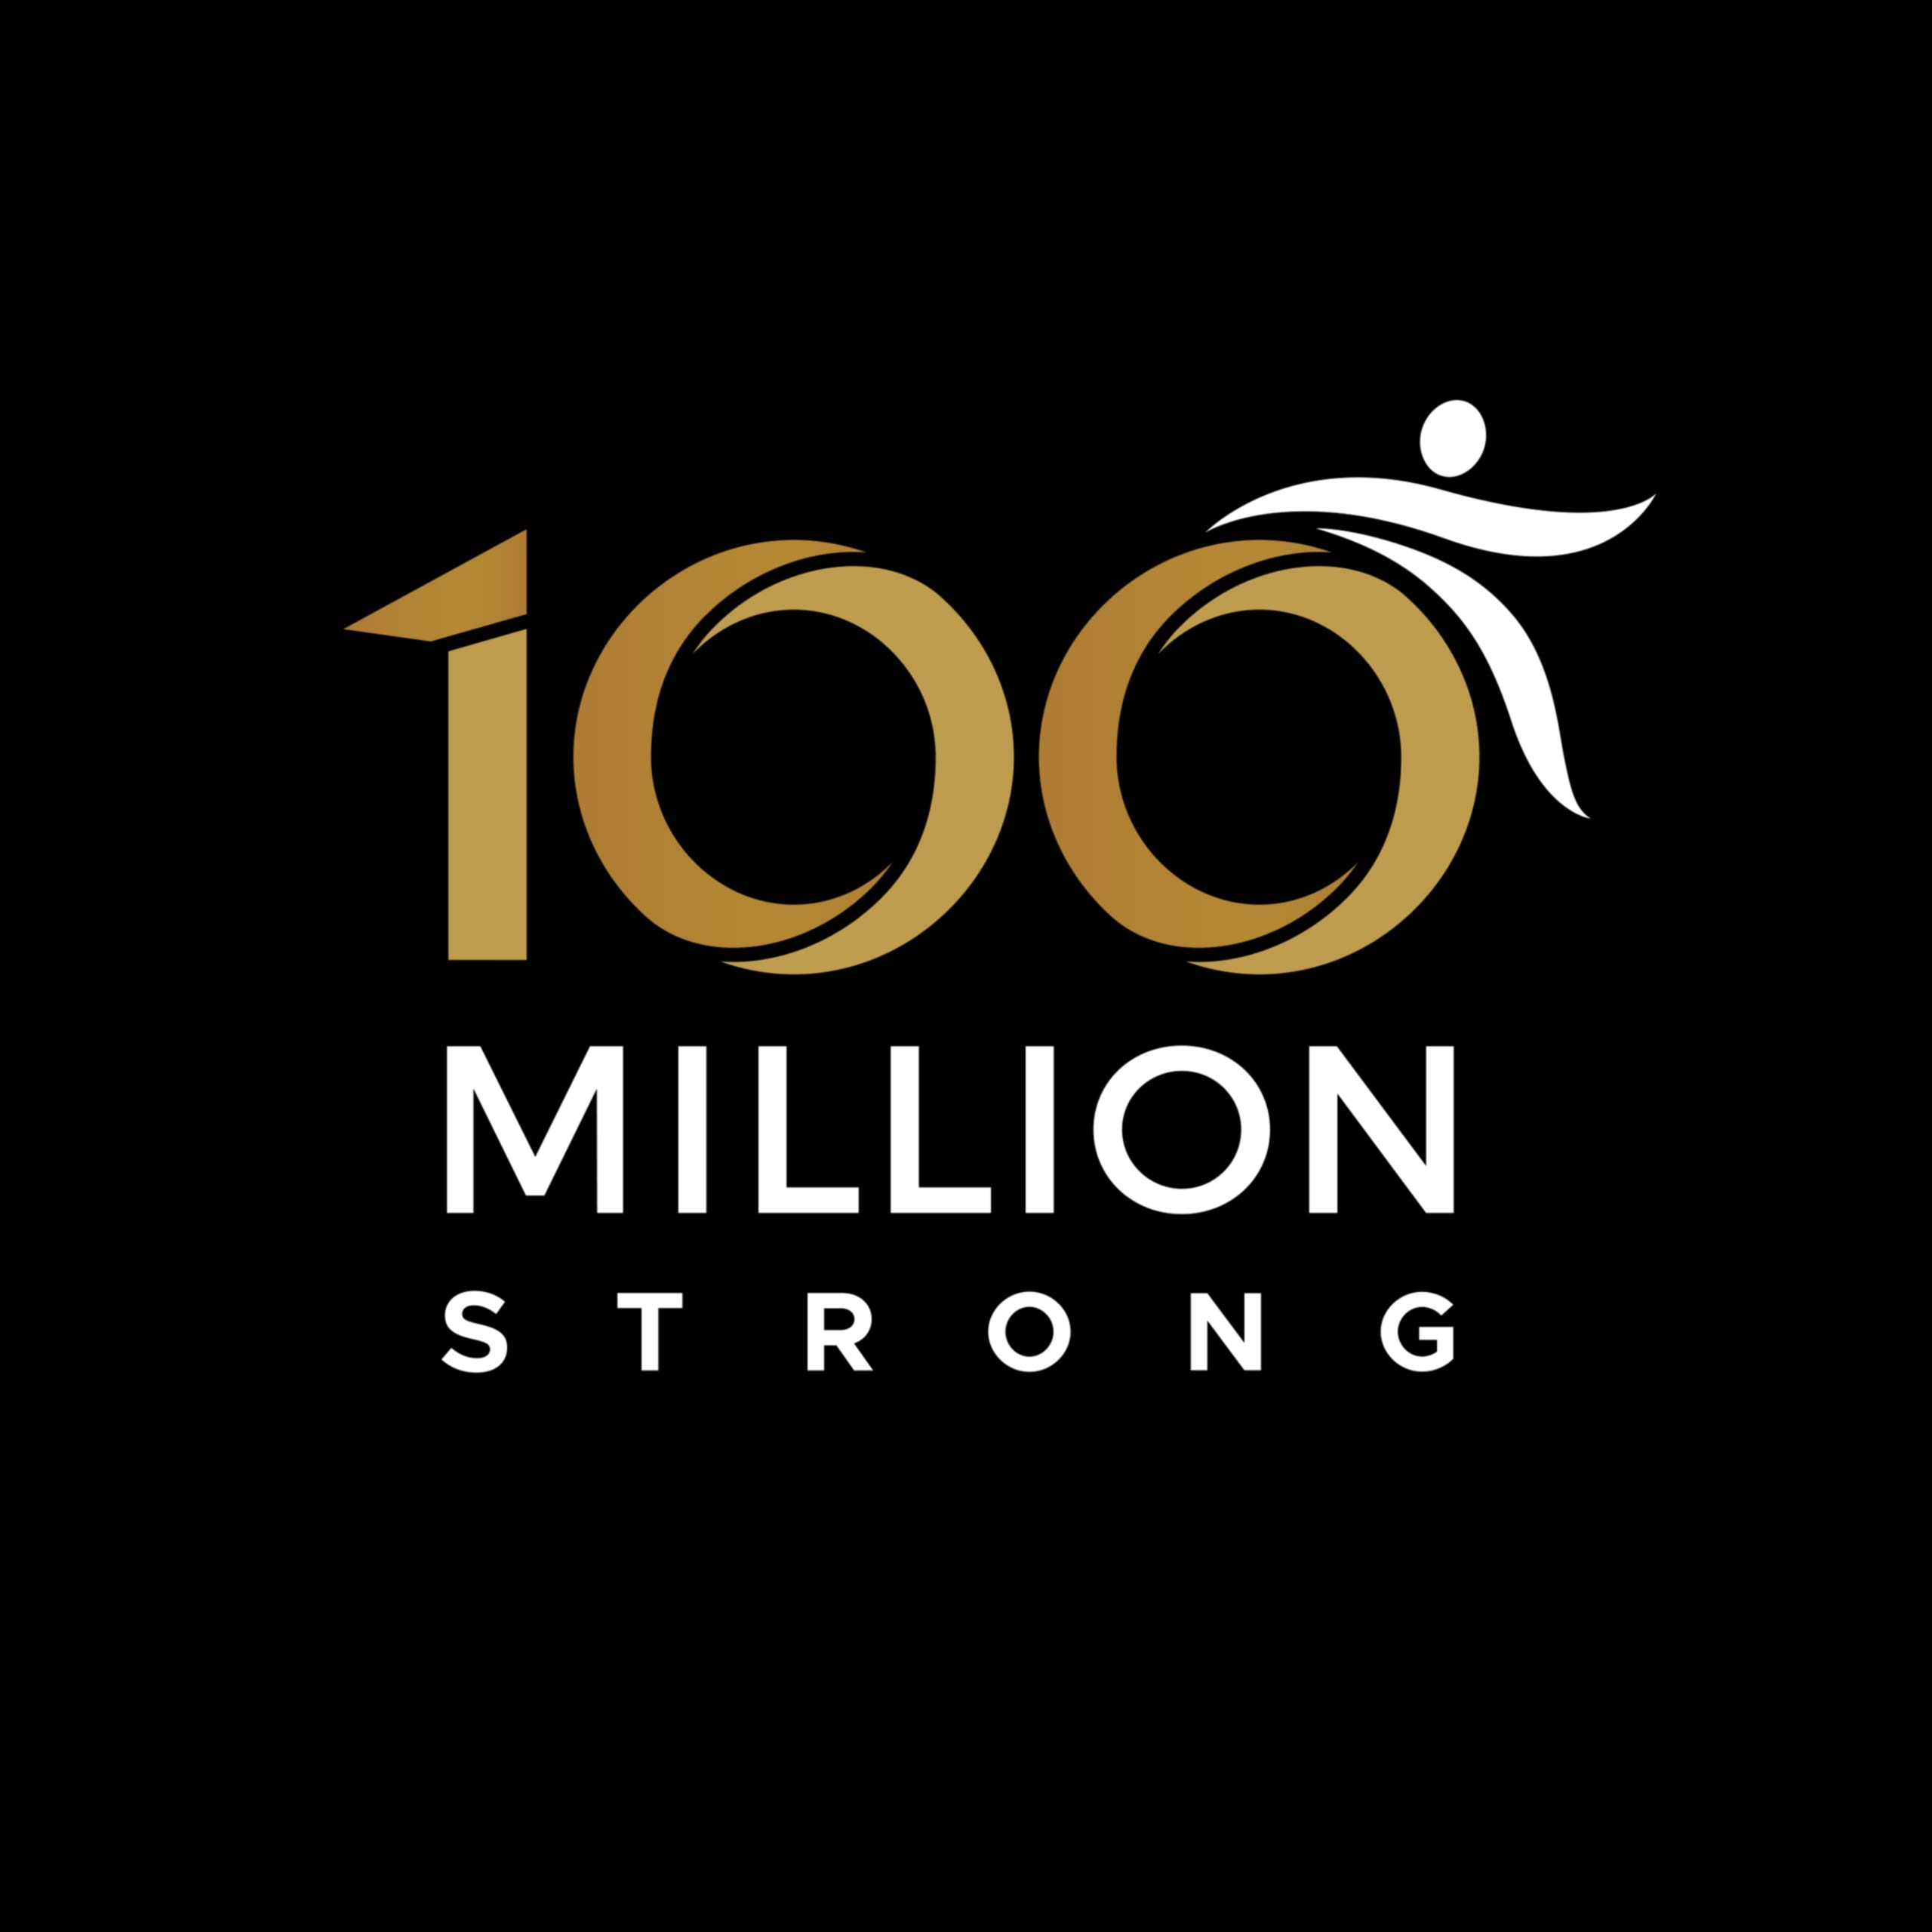 100 Million Strong logo design